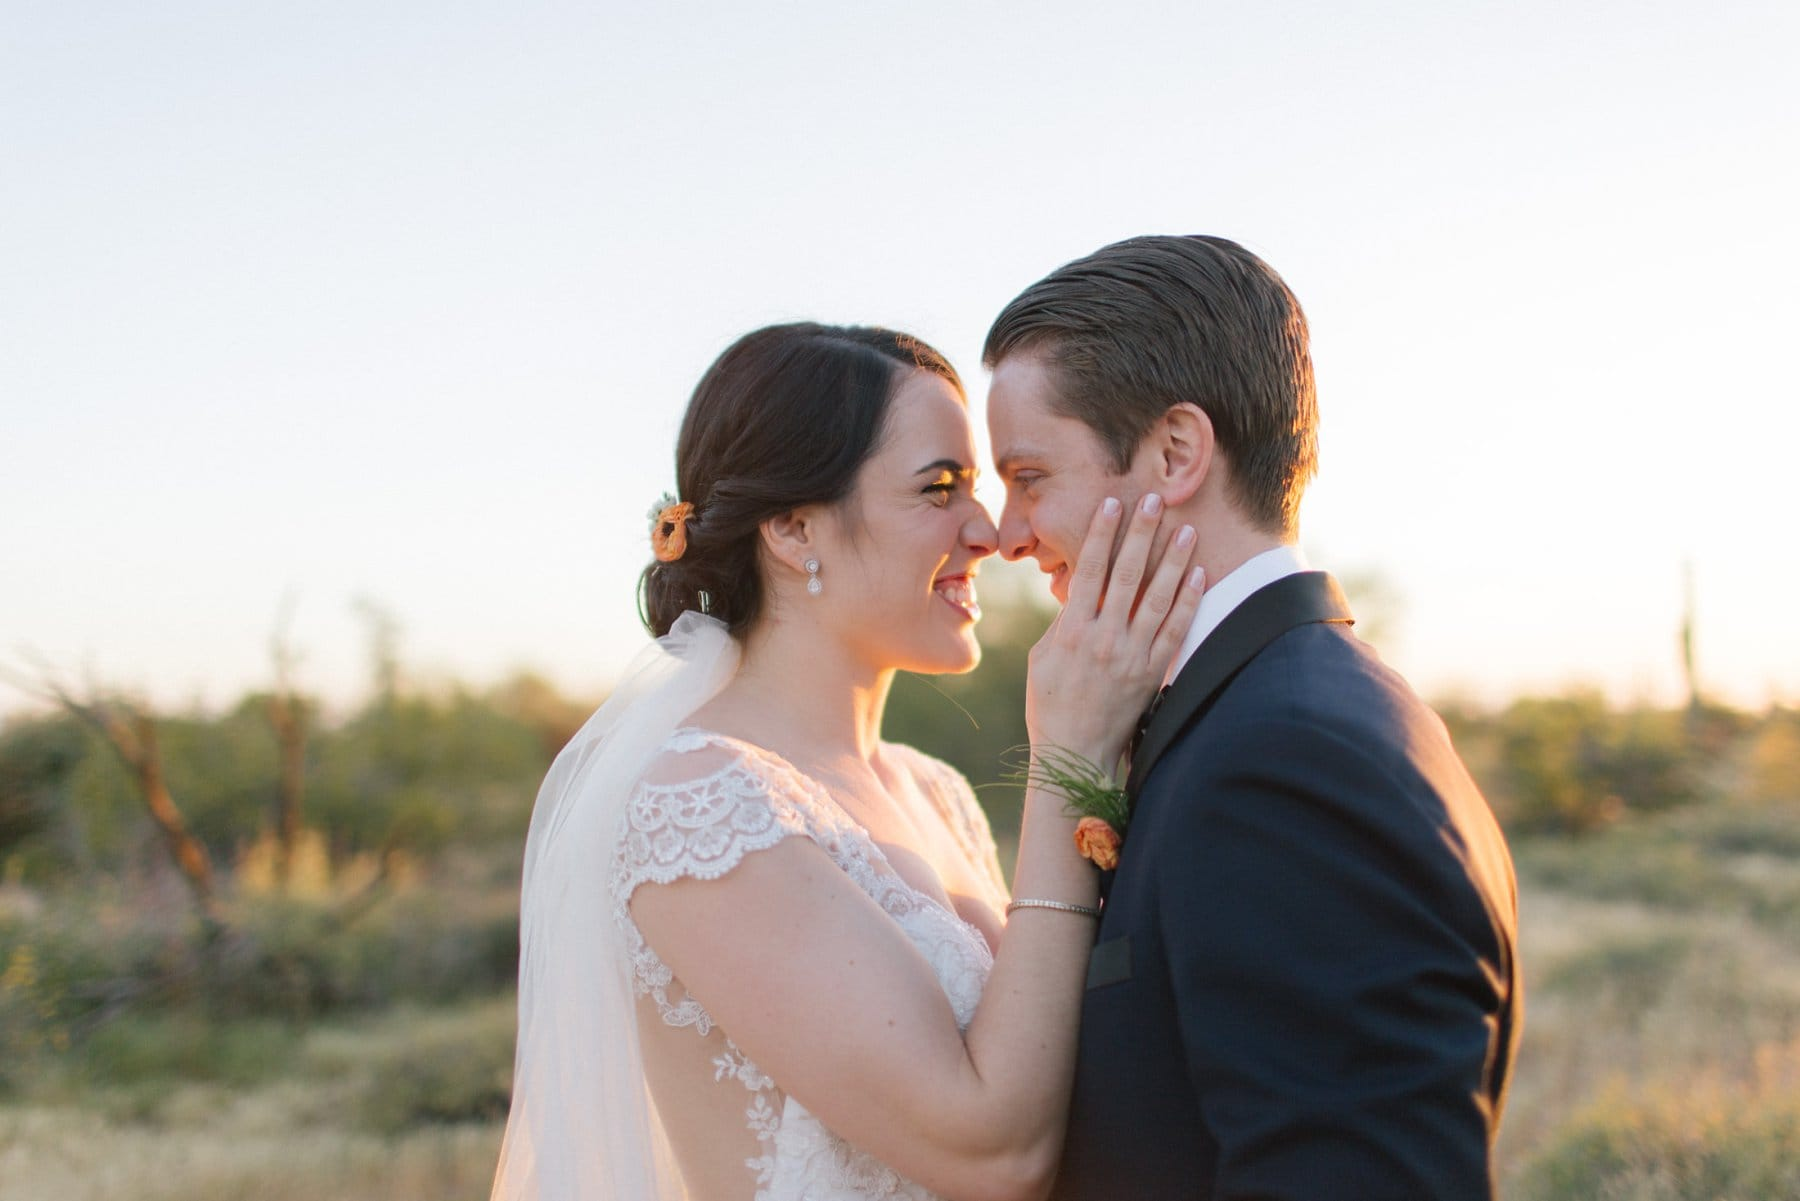 real genuine bride & groom photos in Arizona desert sunset